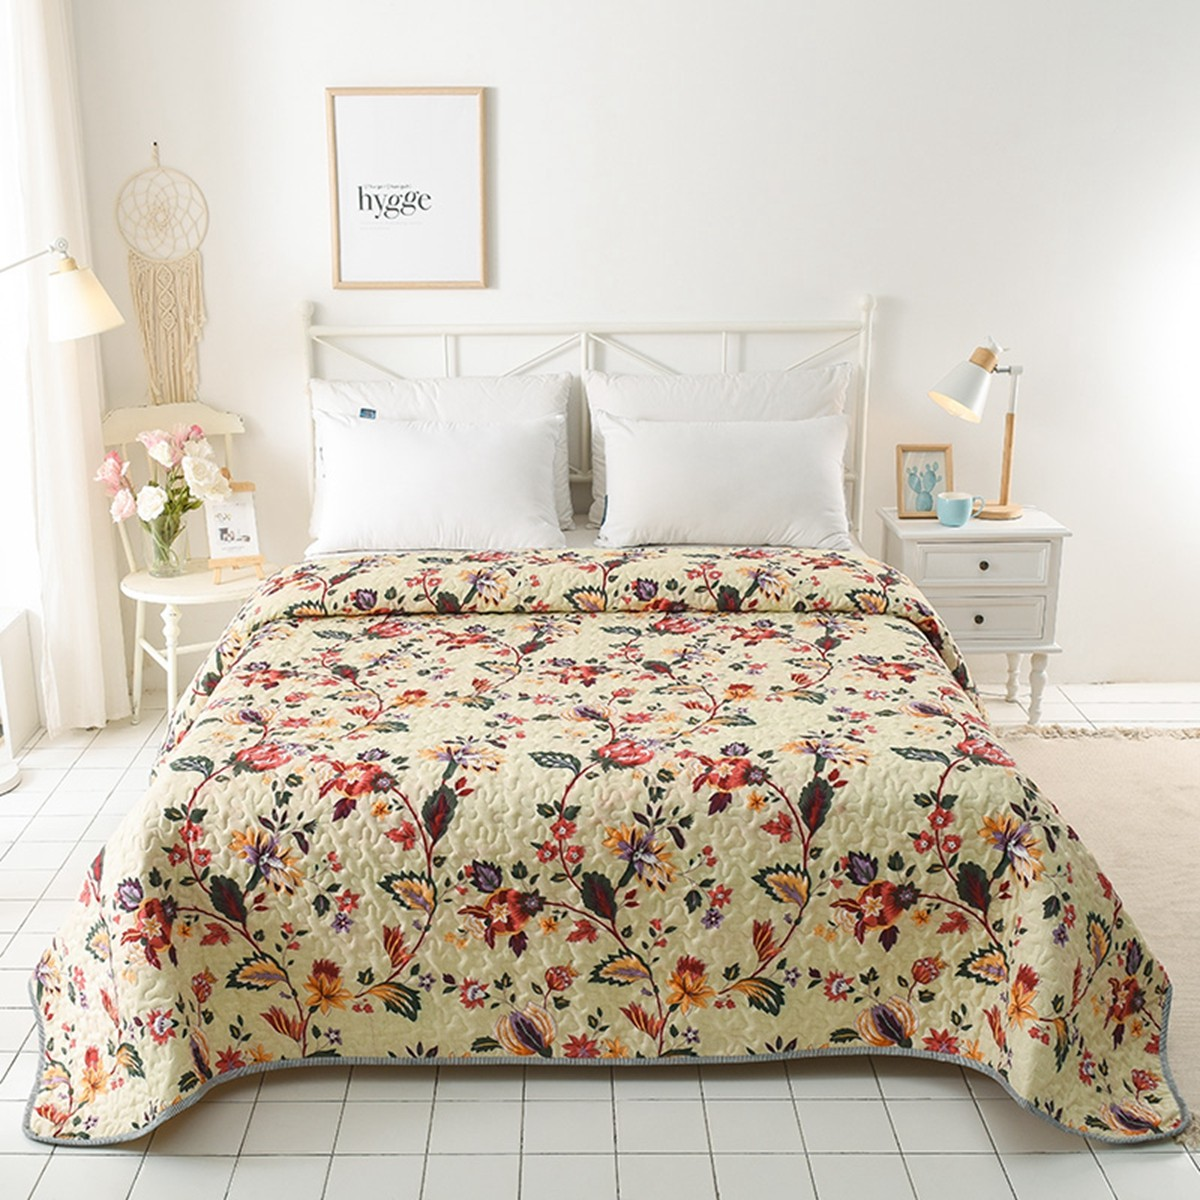 Floral Doona Duvet Single Queen Size Quilted Bedspreads Coverlet No Pillow Cases Ebay